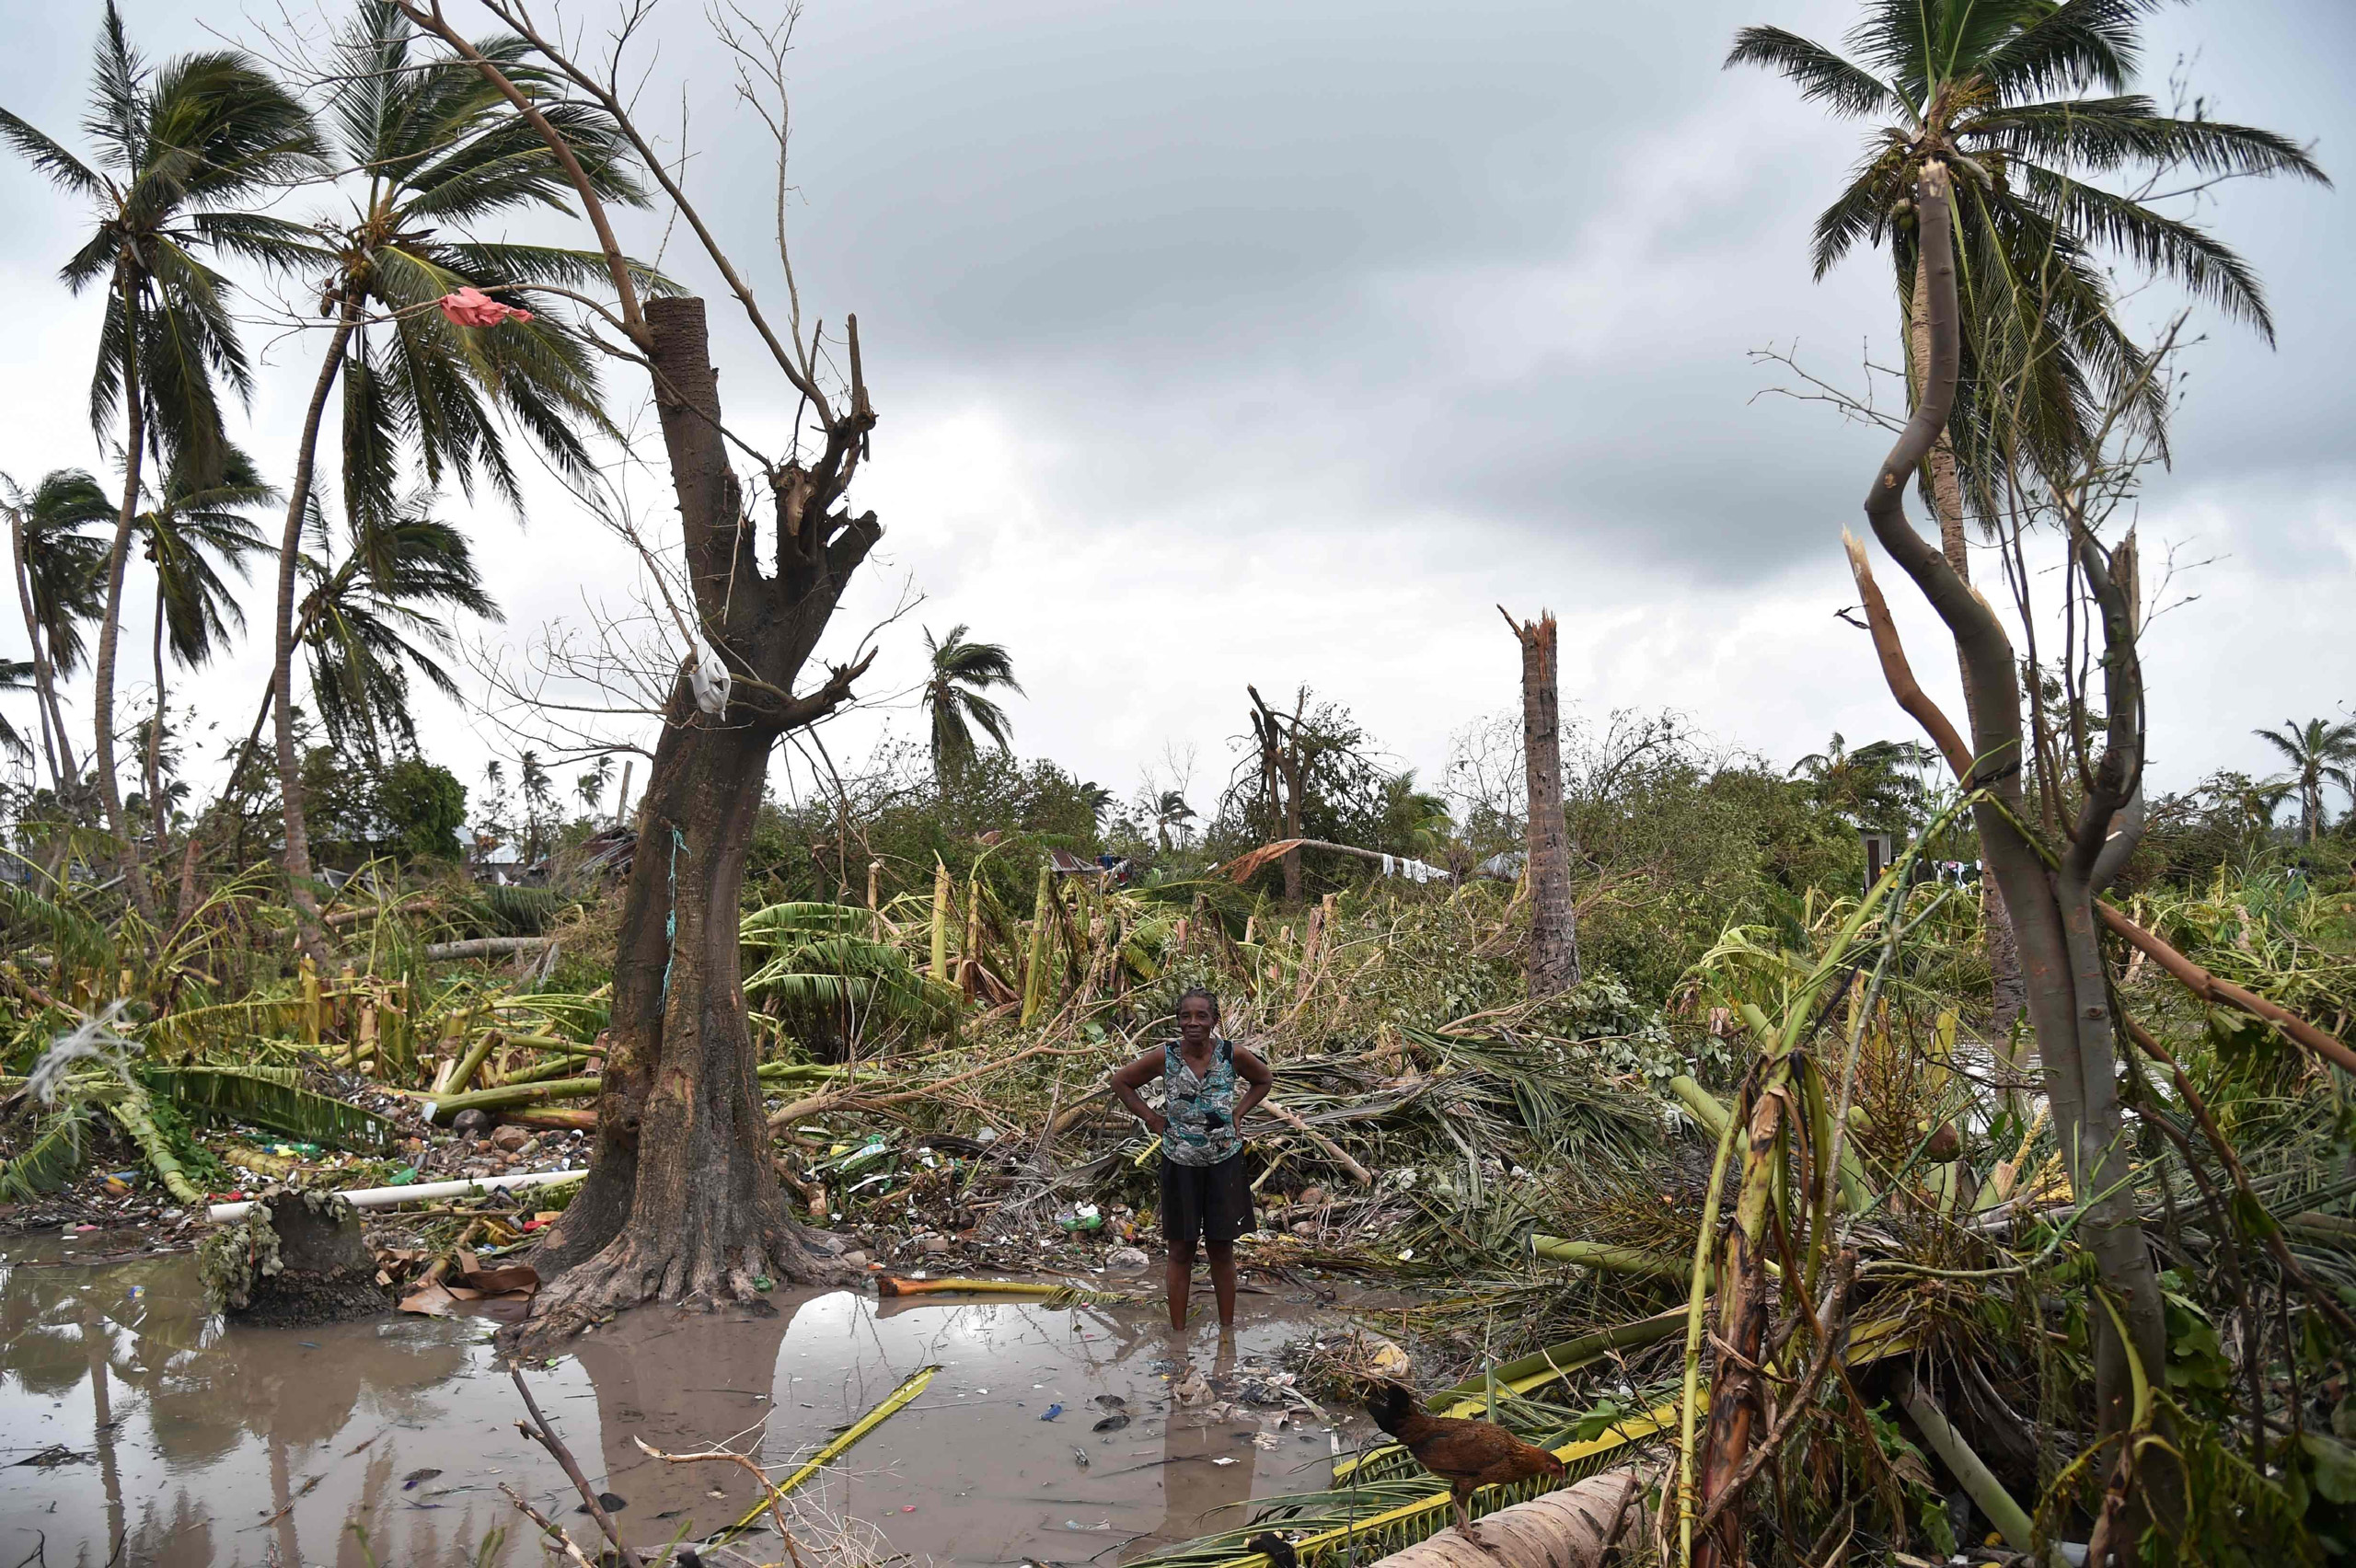 A woman stands in a field of destroyed trees after the passing of Hurricane Matthew in Sous Roche in Les Cayes, Haiti, on Oct. 6, 2016.